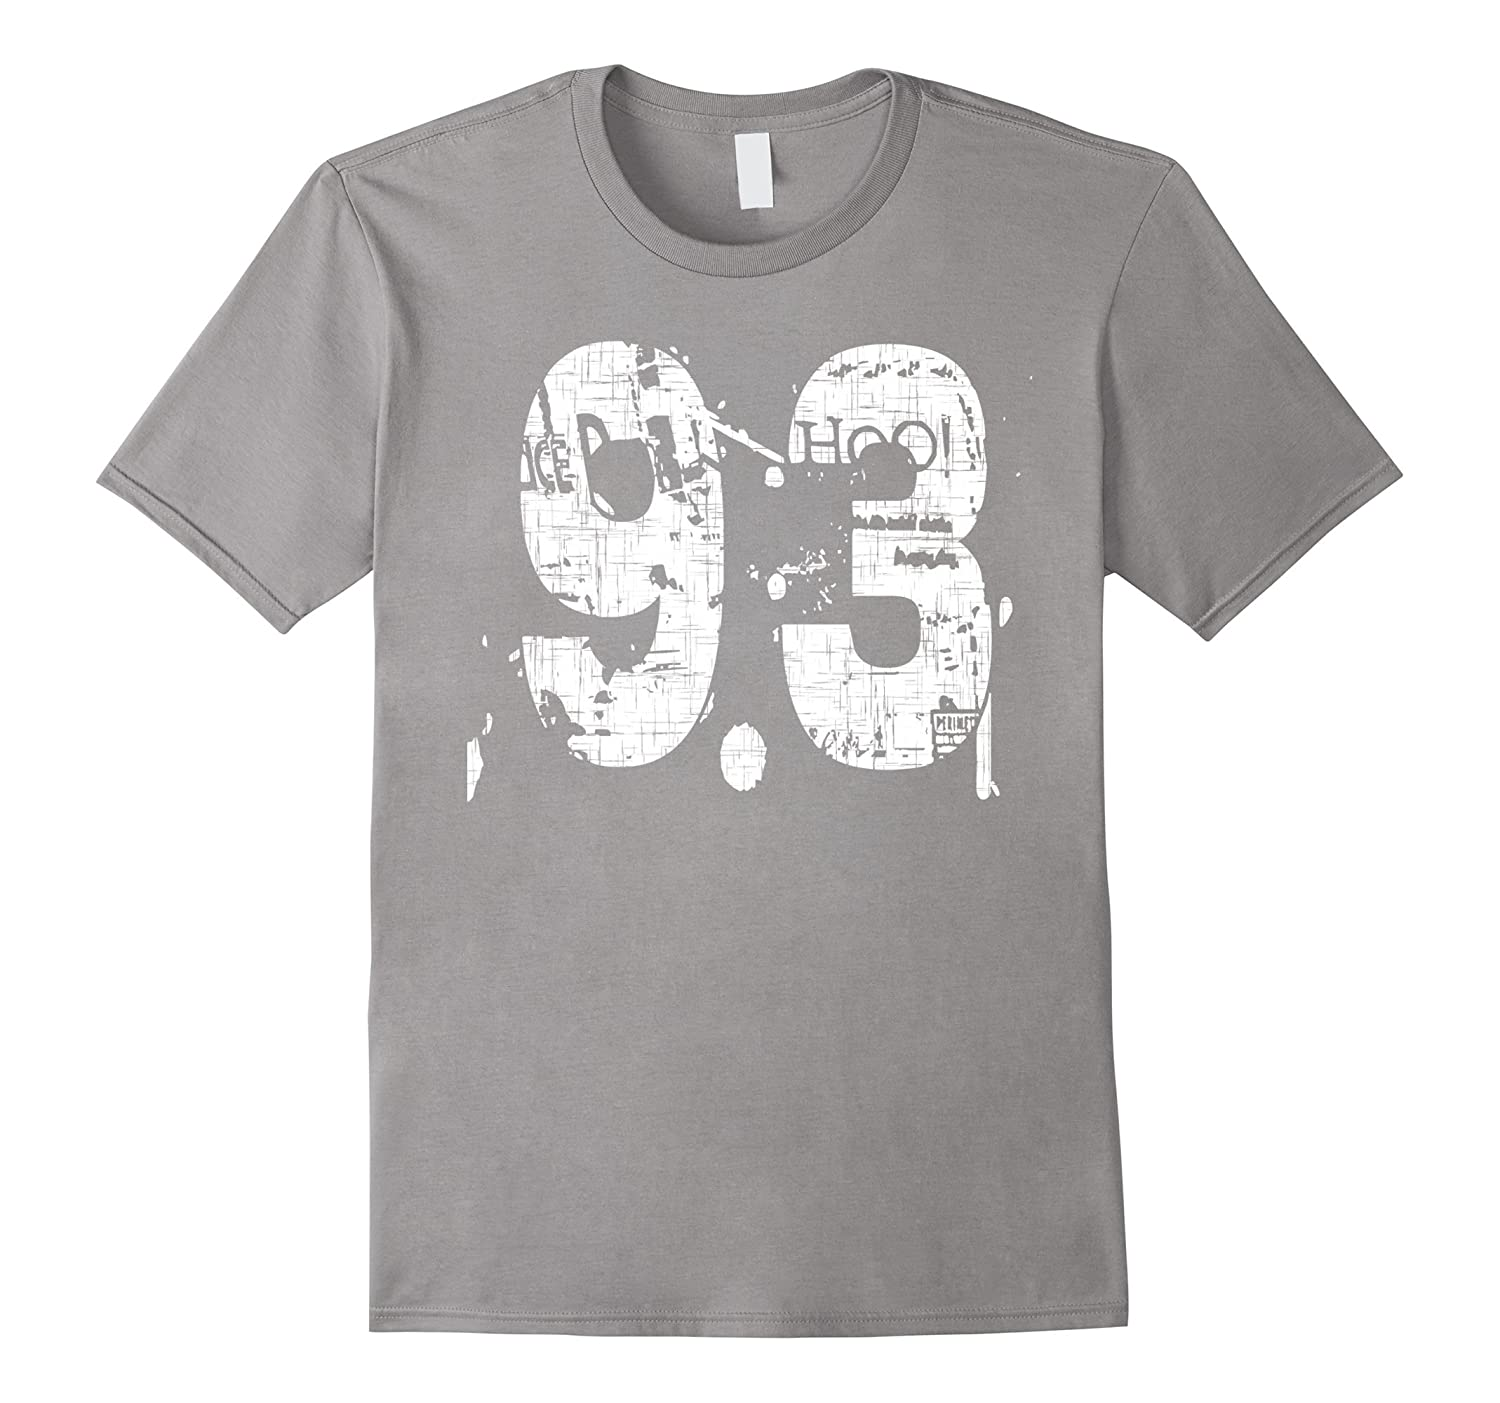 93 Numbered T-Shirt printed front and back in super grunge-PL